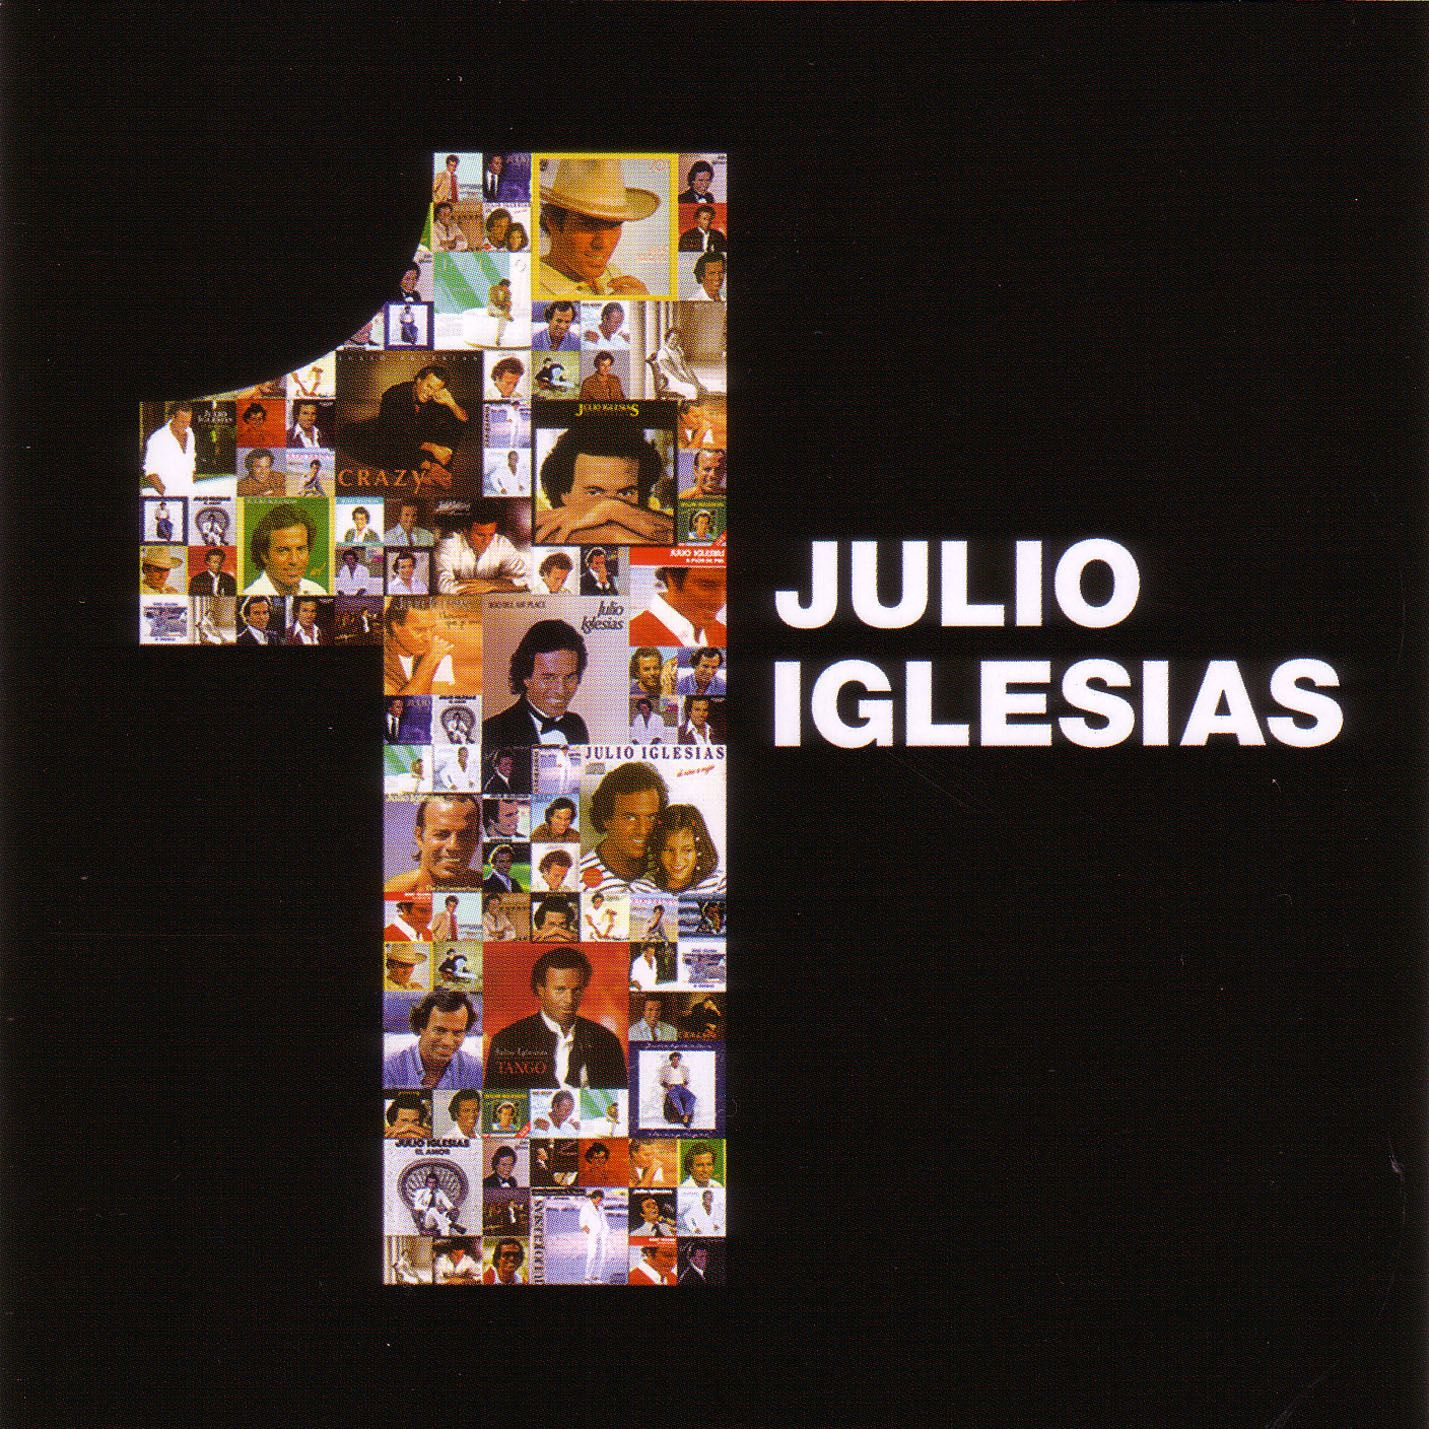 Julio Iglesias - Volume 1 album cover